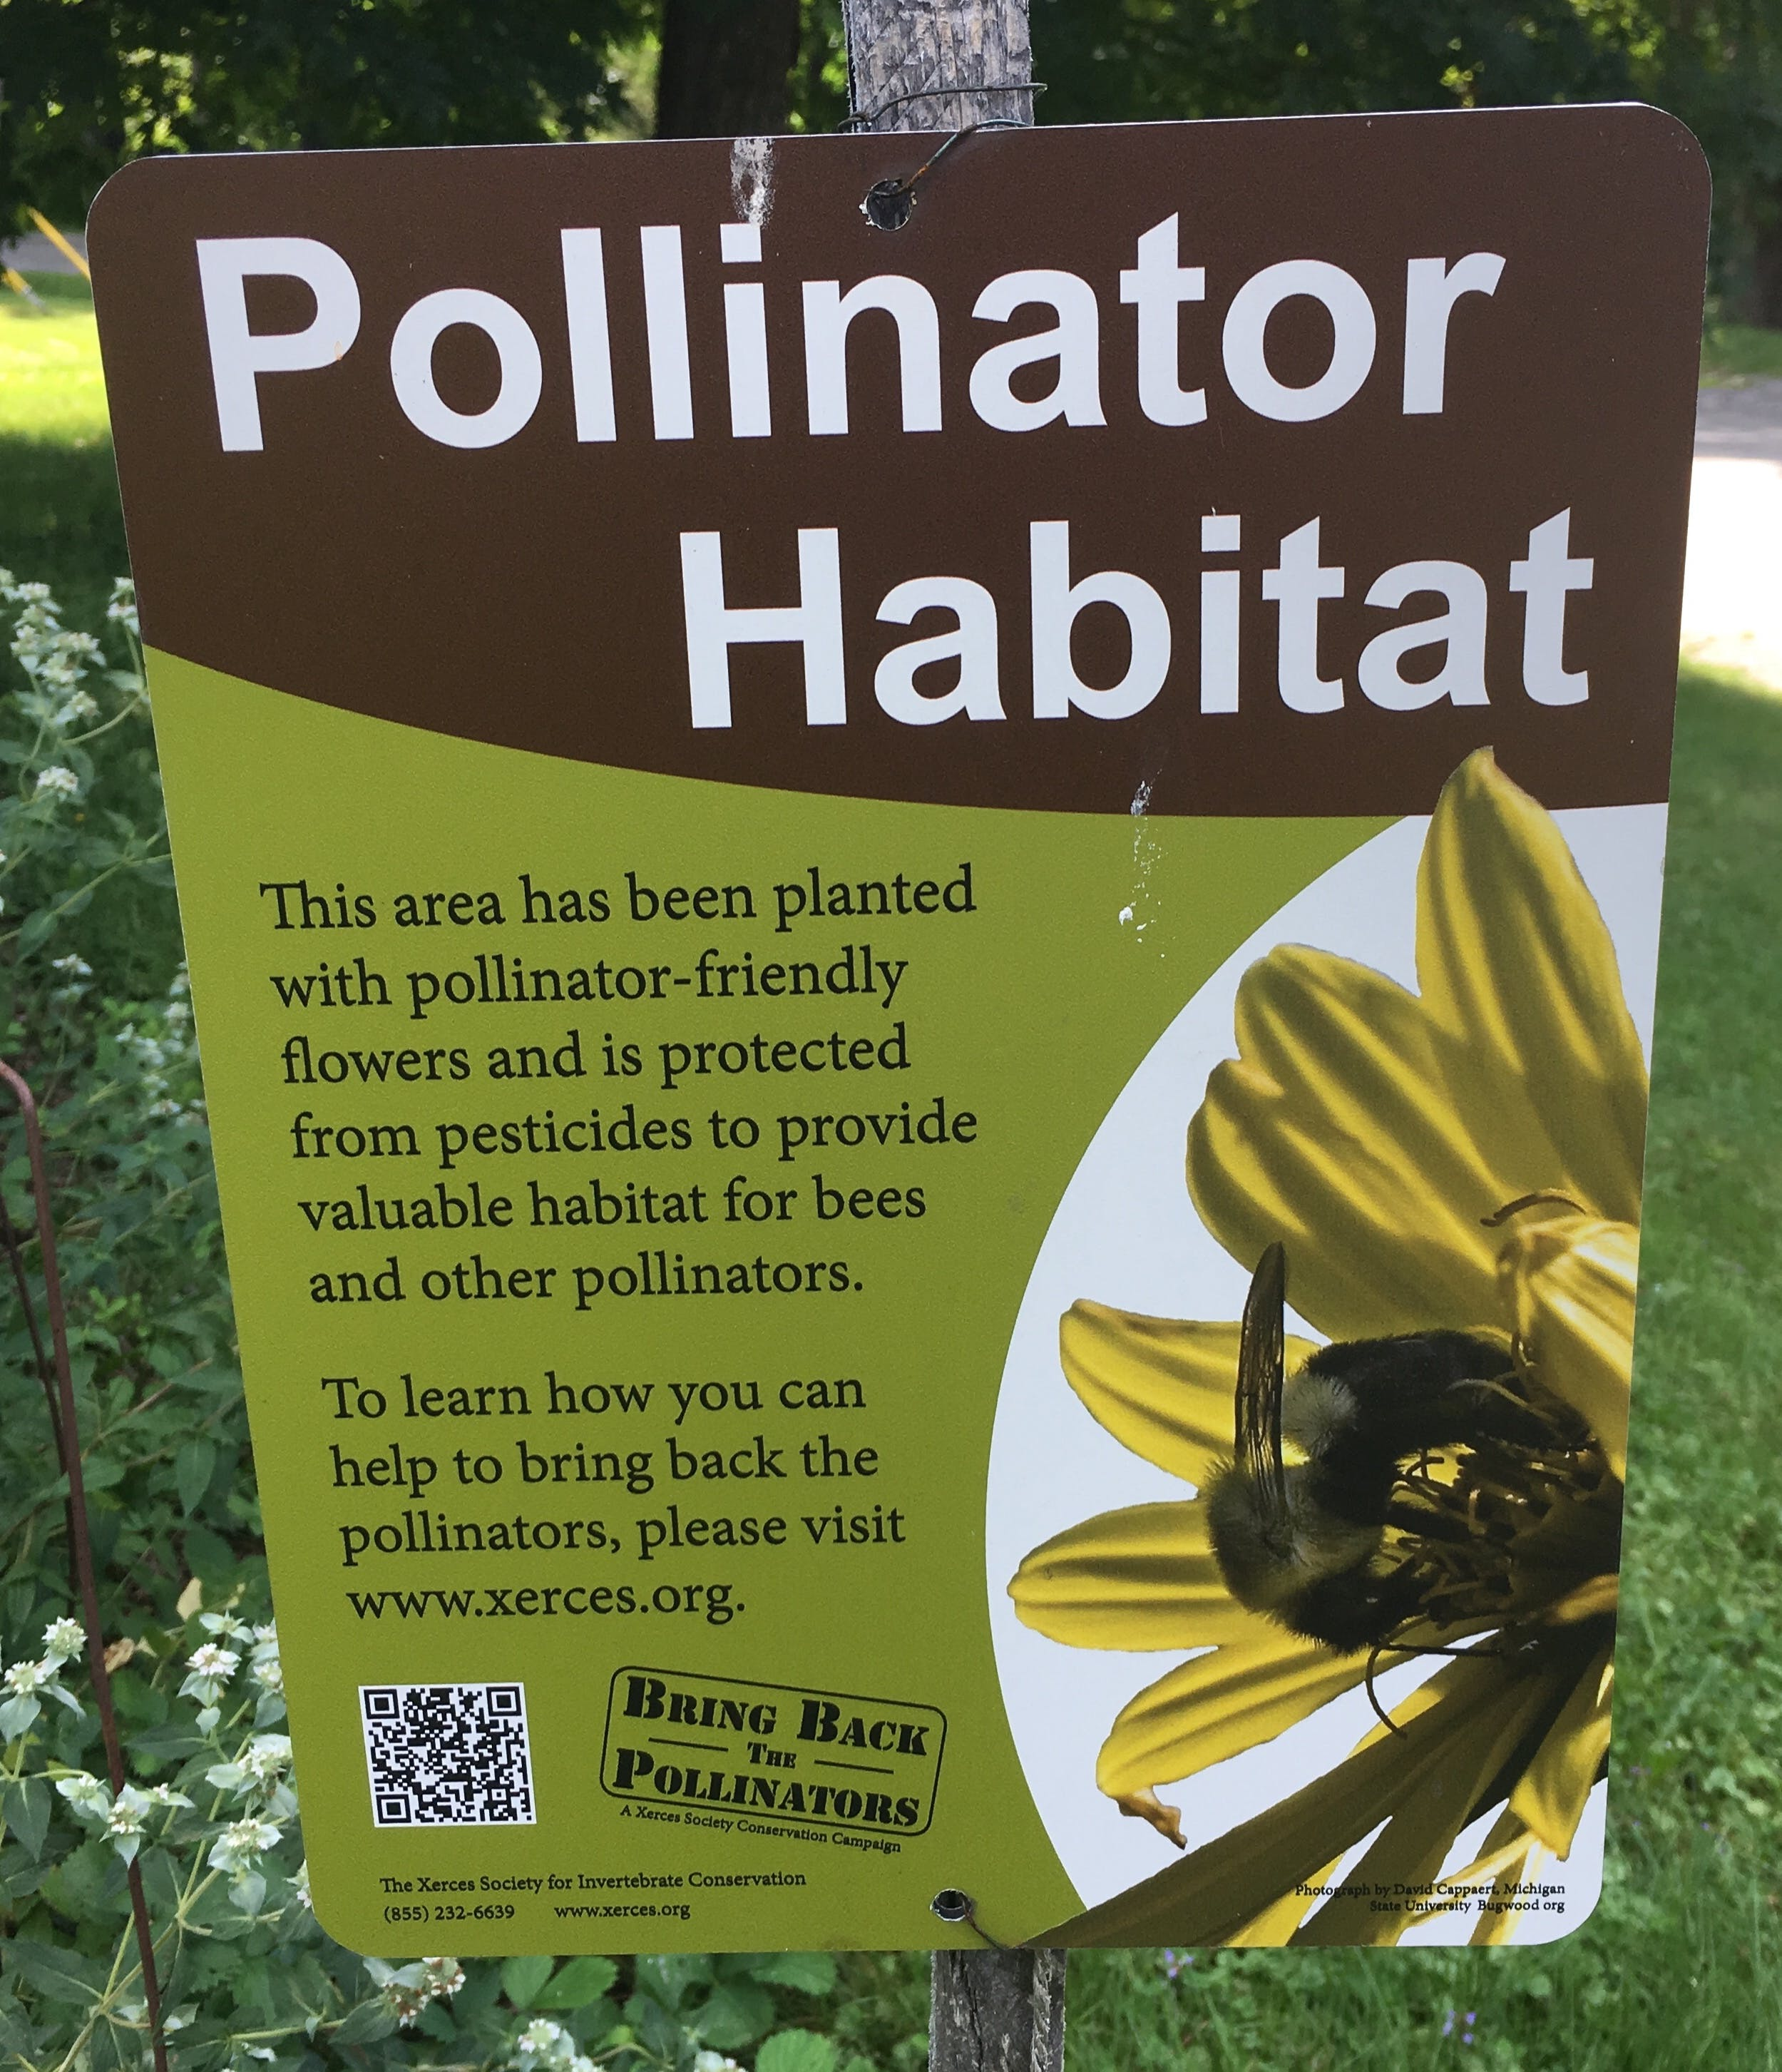 Learn more about pollinators at Xerces.org